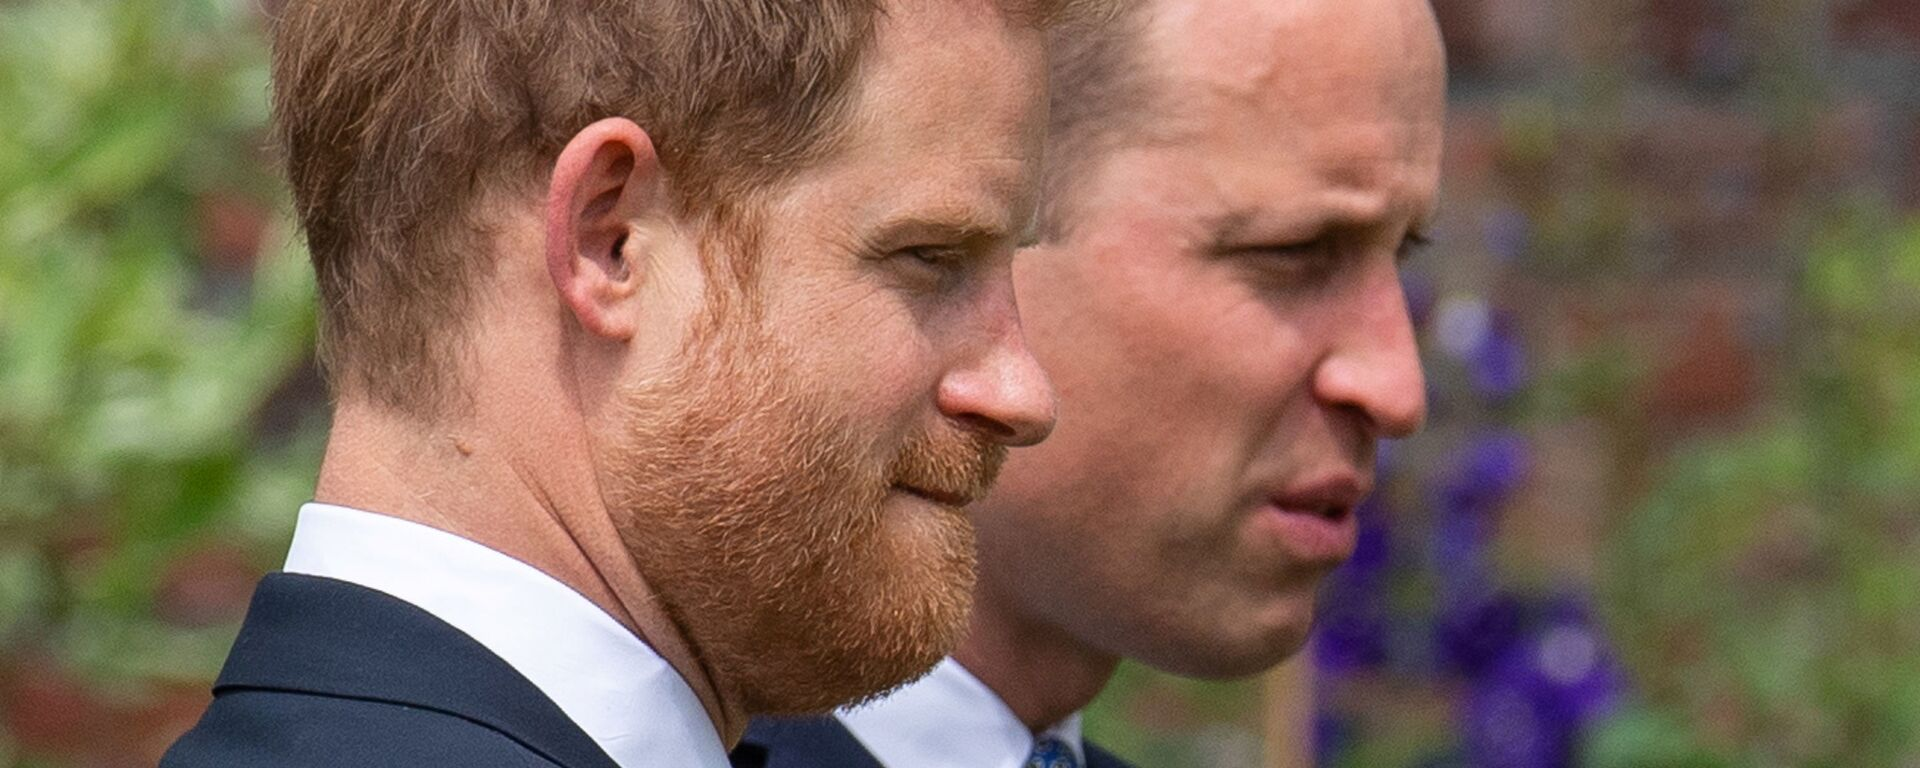 Britain's Prince William, The Duke of Cambridge, and Prince Harry, Duke of Sussex, attend the unveiling of a statue they commissioned of their mother Diana, Princess of Wales, in the Sunken Garden at Kensington Palace, London, Britain July 1, 2021 - Sputnik International, 1920, 04.07.2021